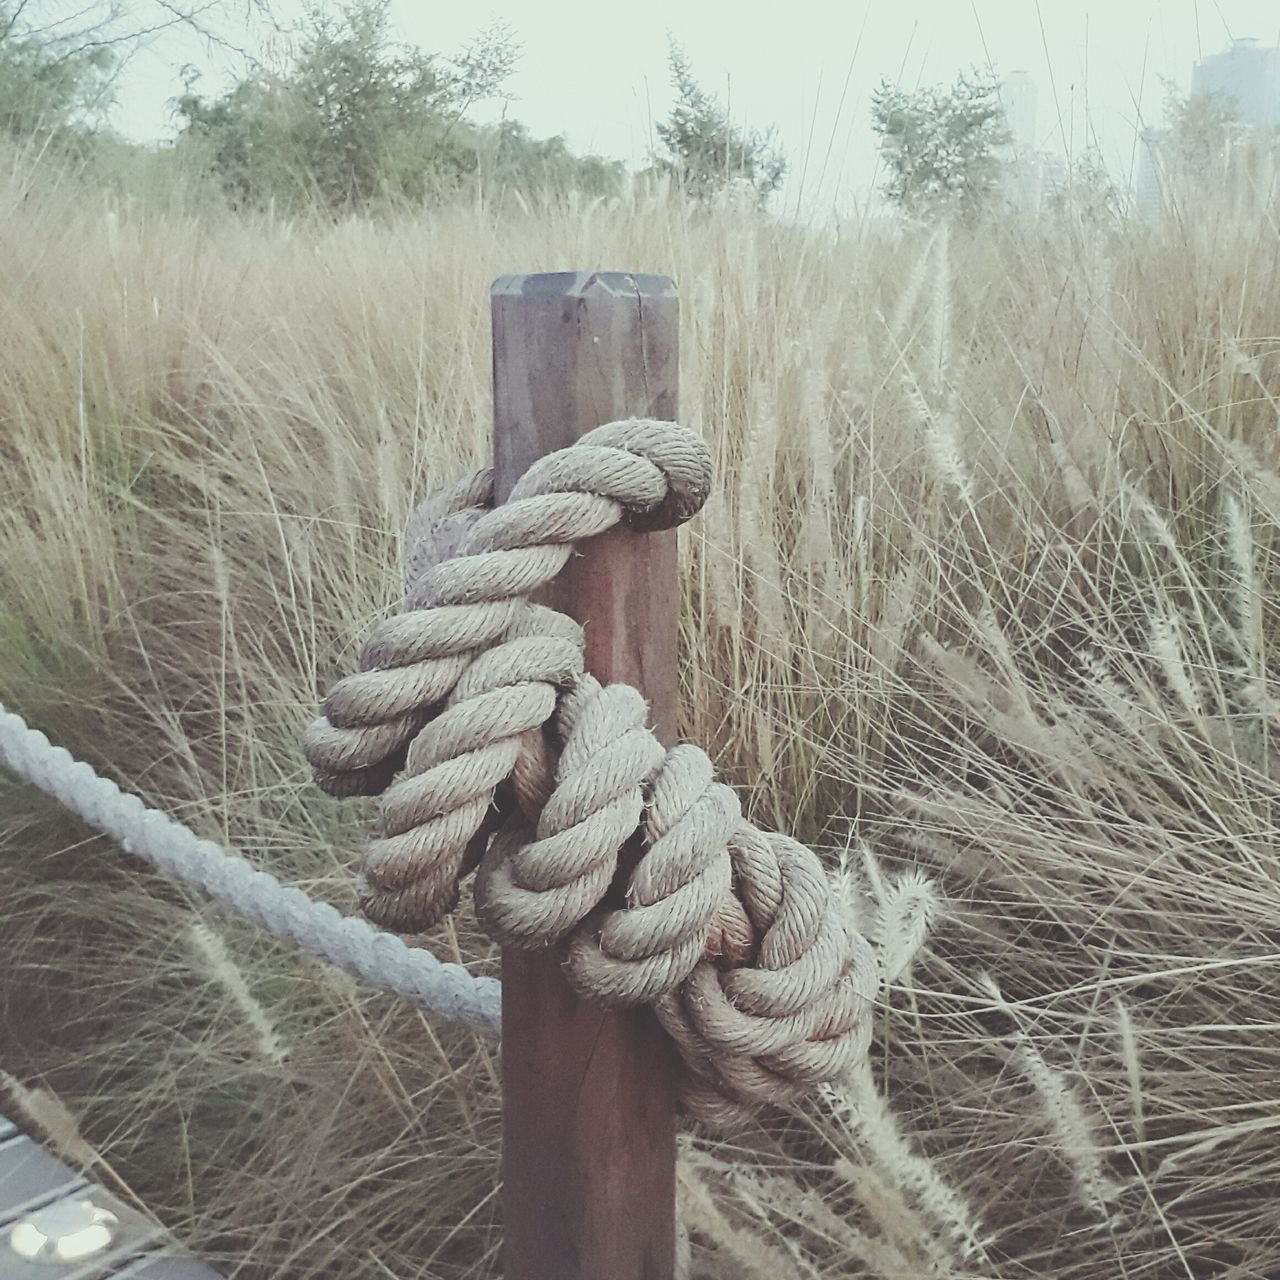 rope, strength, tied up, no people, tied knot, connection, safety, outdoors, day, grass, close-up